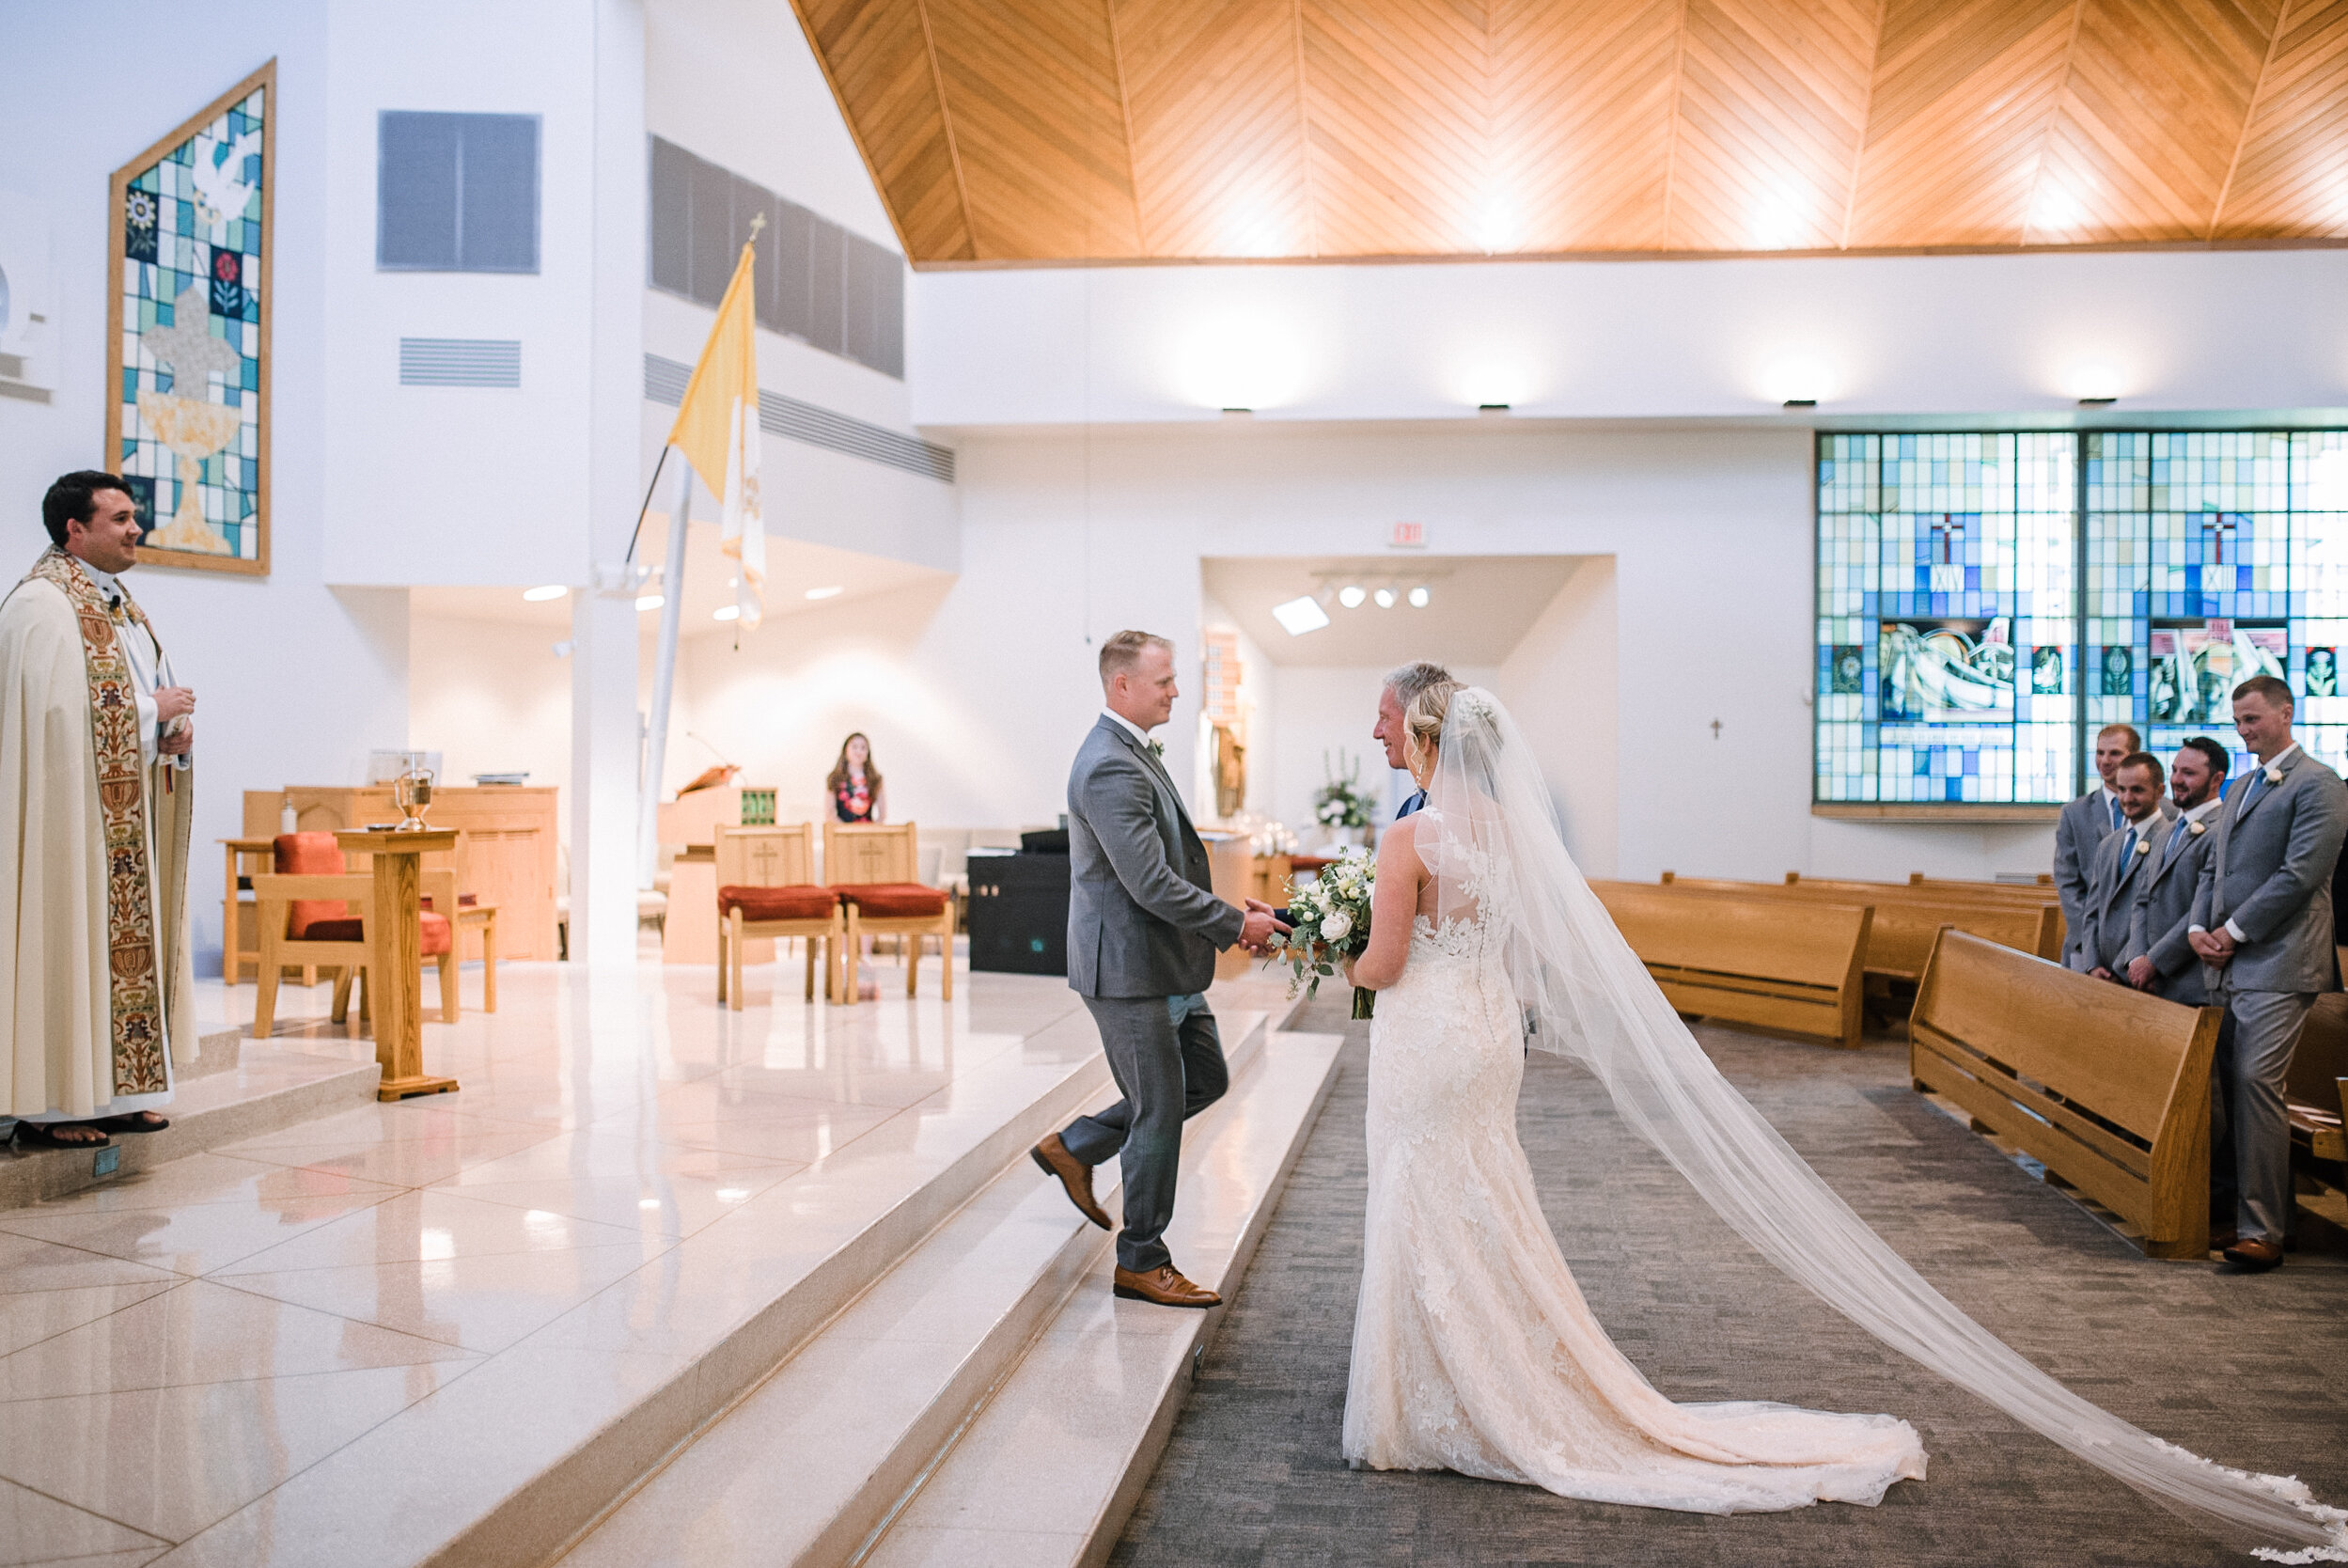 Father of the bride giving bride away at St. Joseph Catholic Church